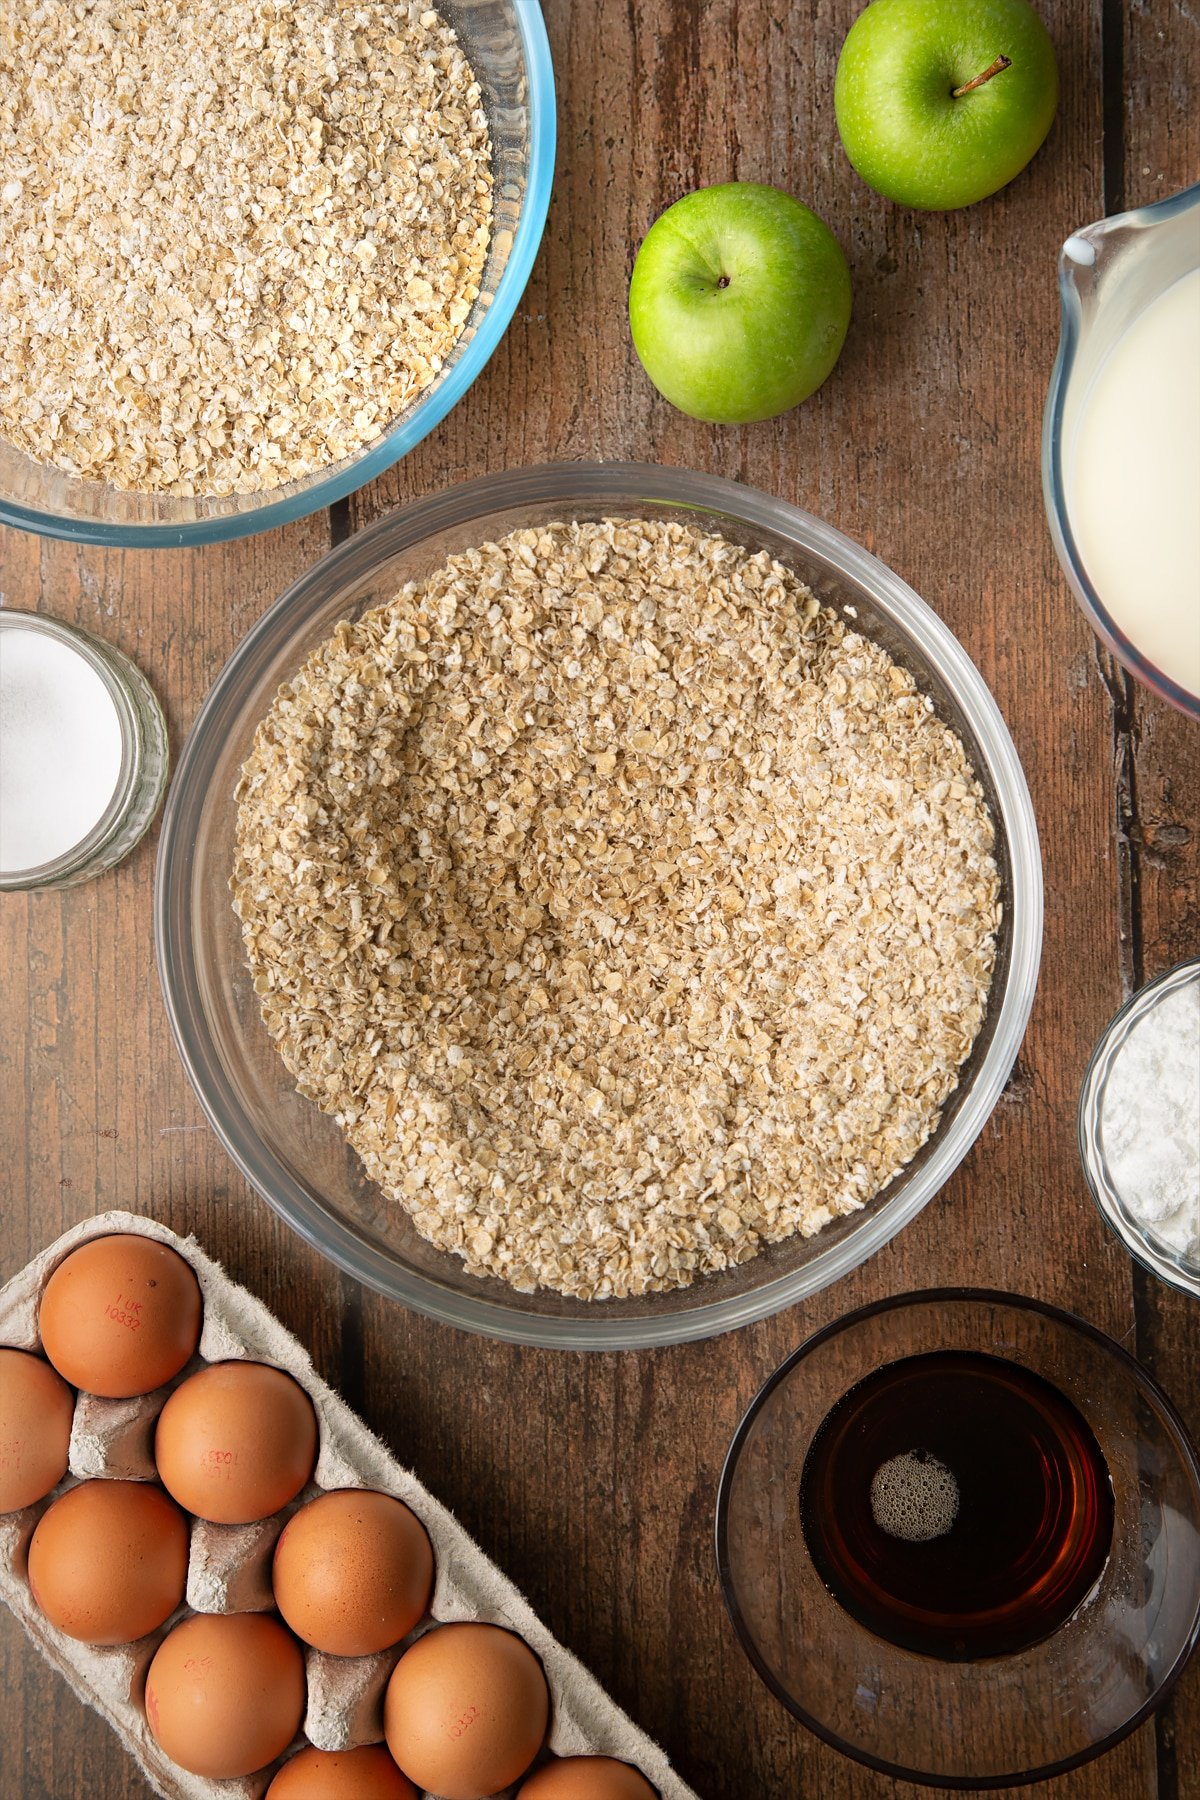 Oats, baking powder and salt whisked together in a glass mixing bowl. Ingredients to make porridge squares surround the bowl.